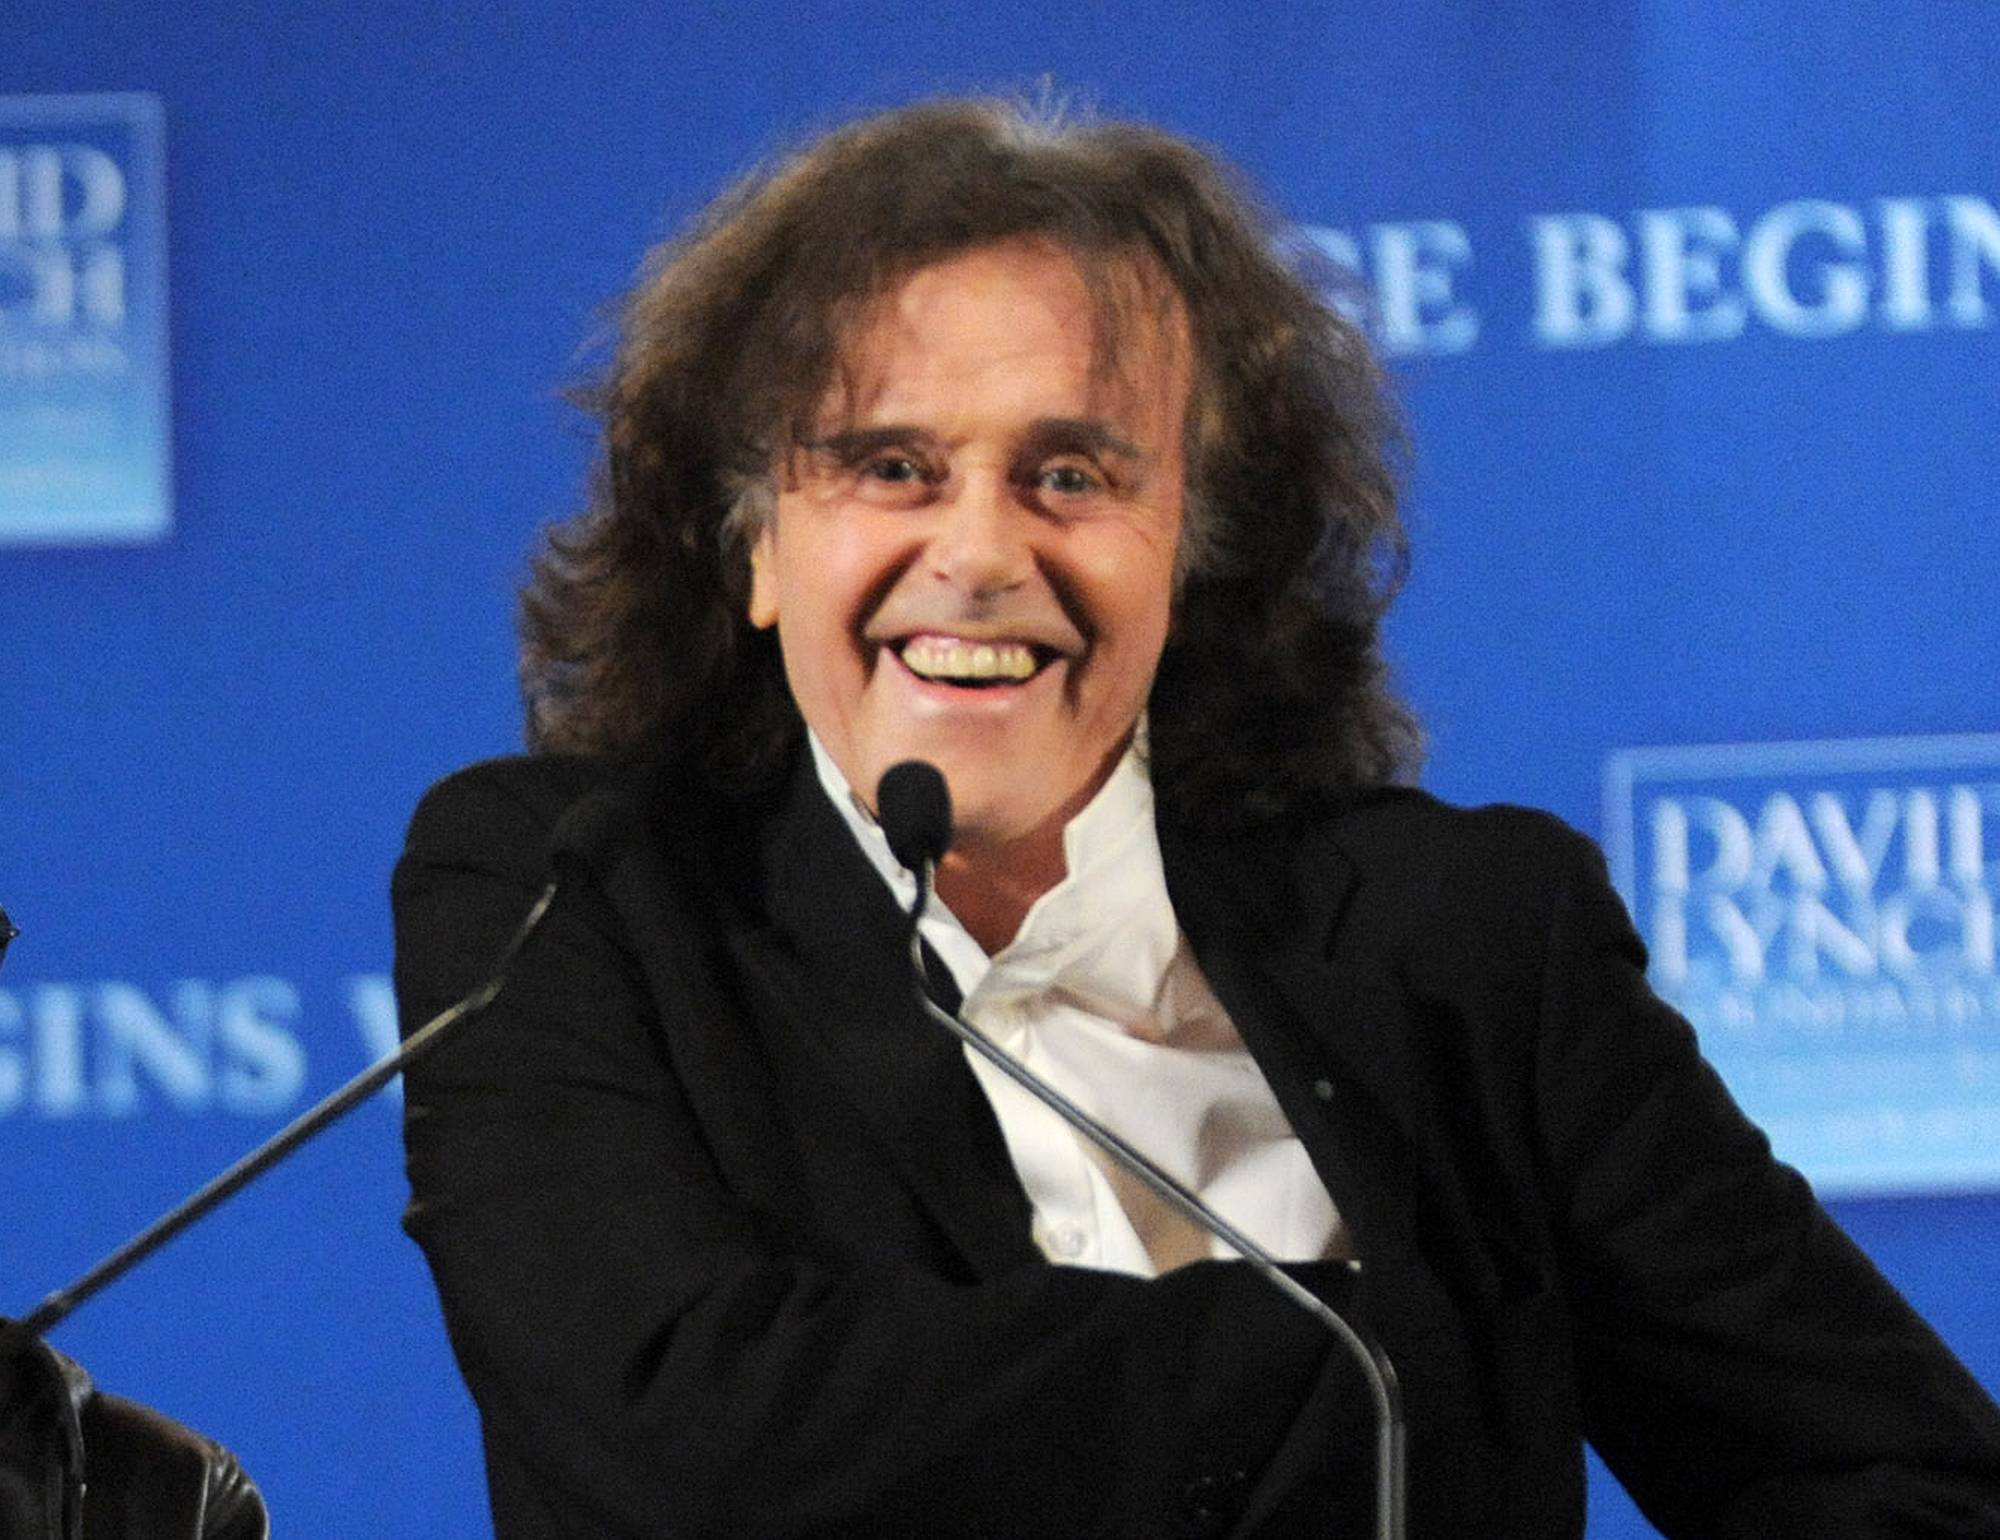 Donovan joins Ray Davies as part of the 2014 Songwriters Hall of Fame class.